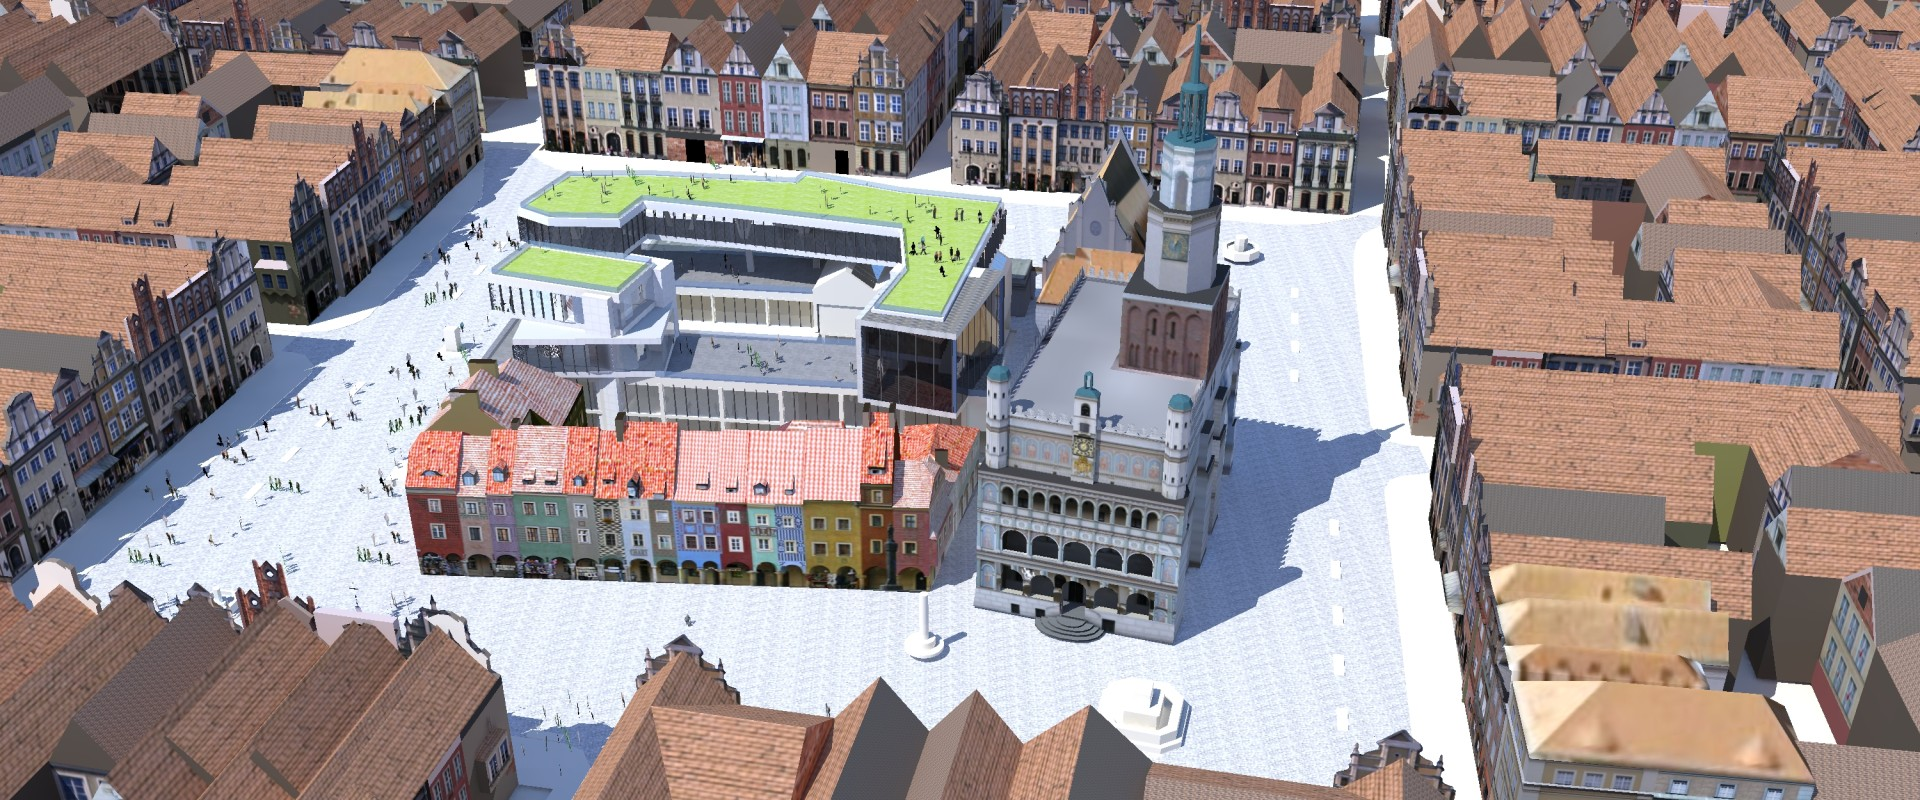 In the heart of Poznań - on the Old Market Square - a Contemporary Art Museum is going to change the perception of old historic urban structure.